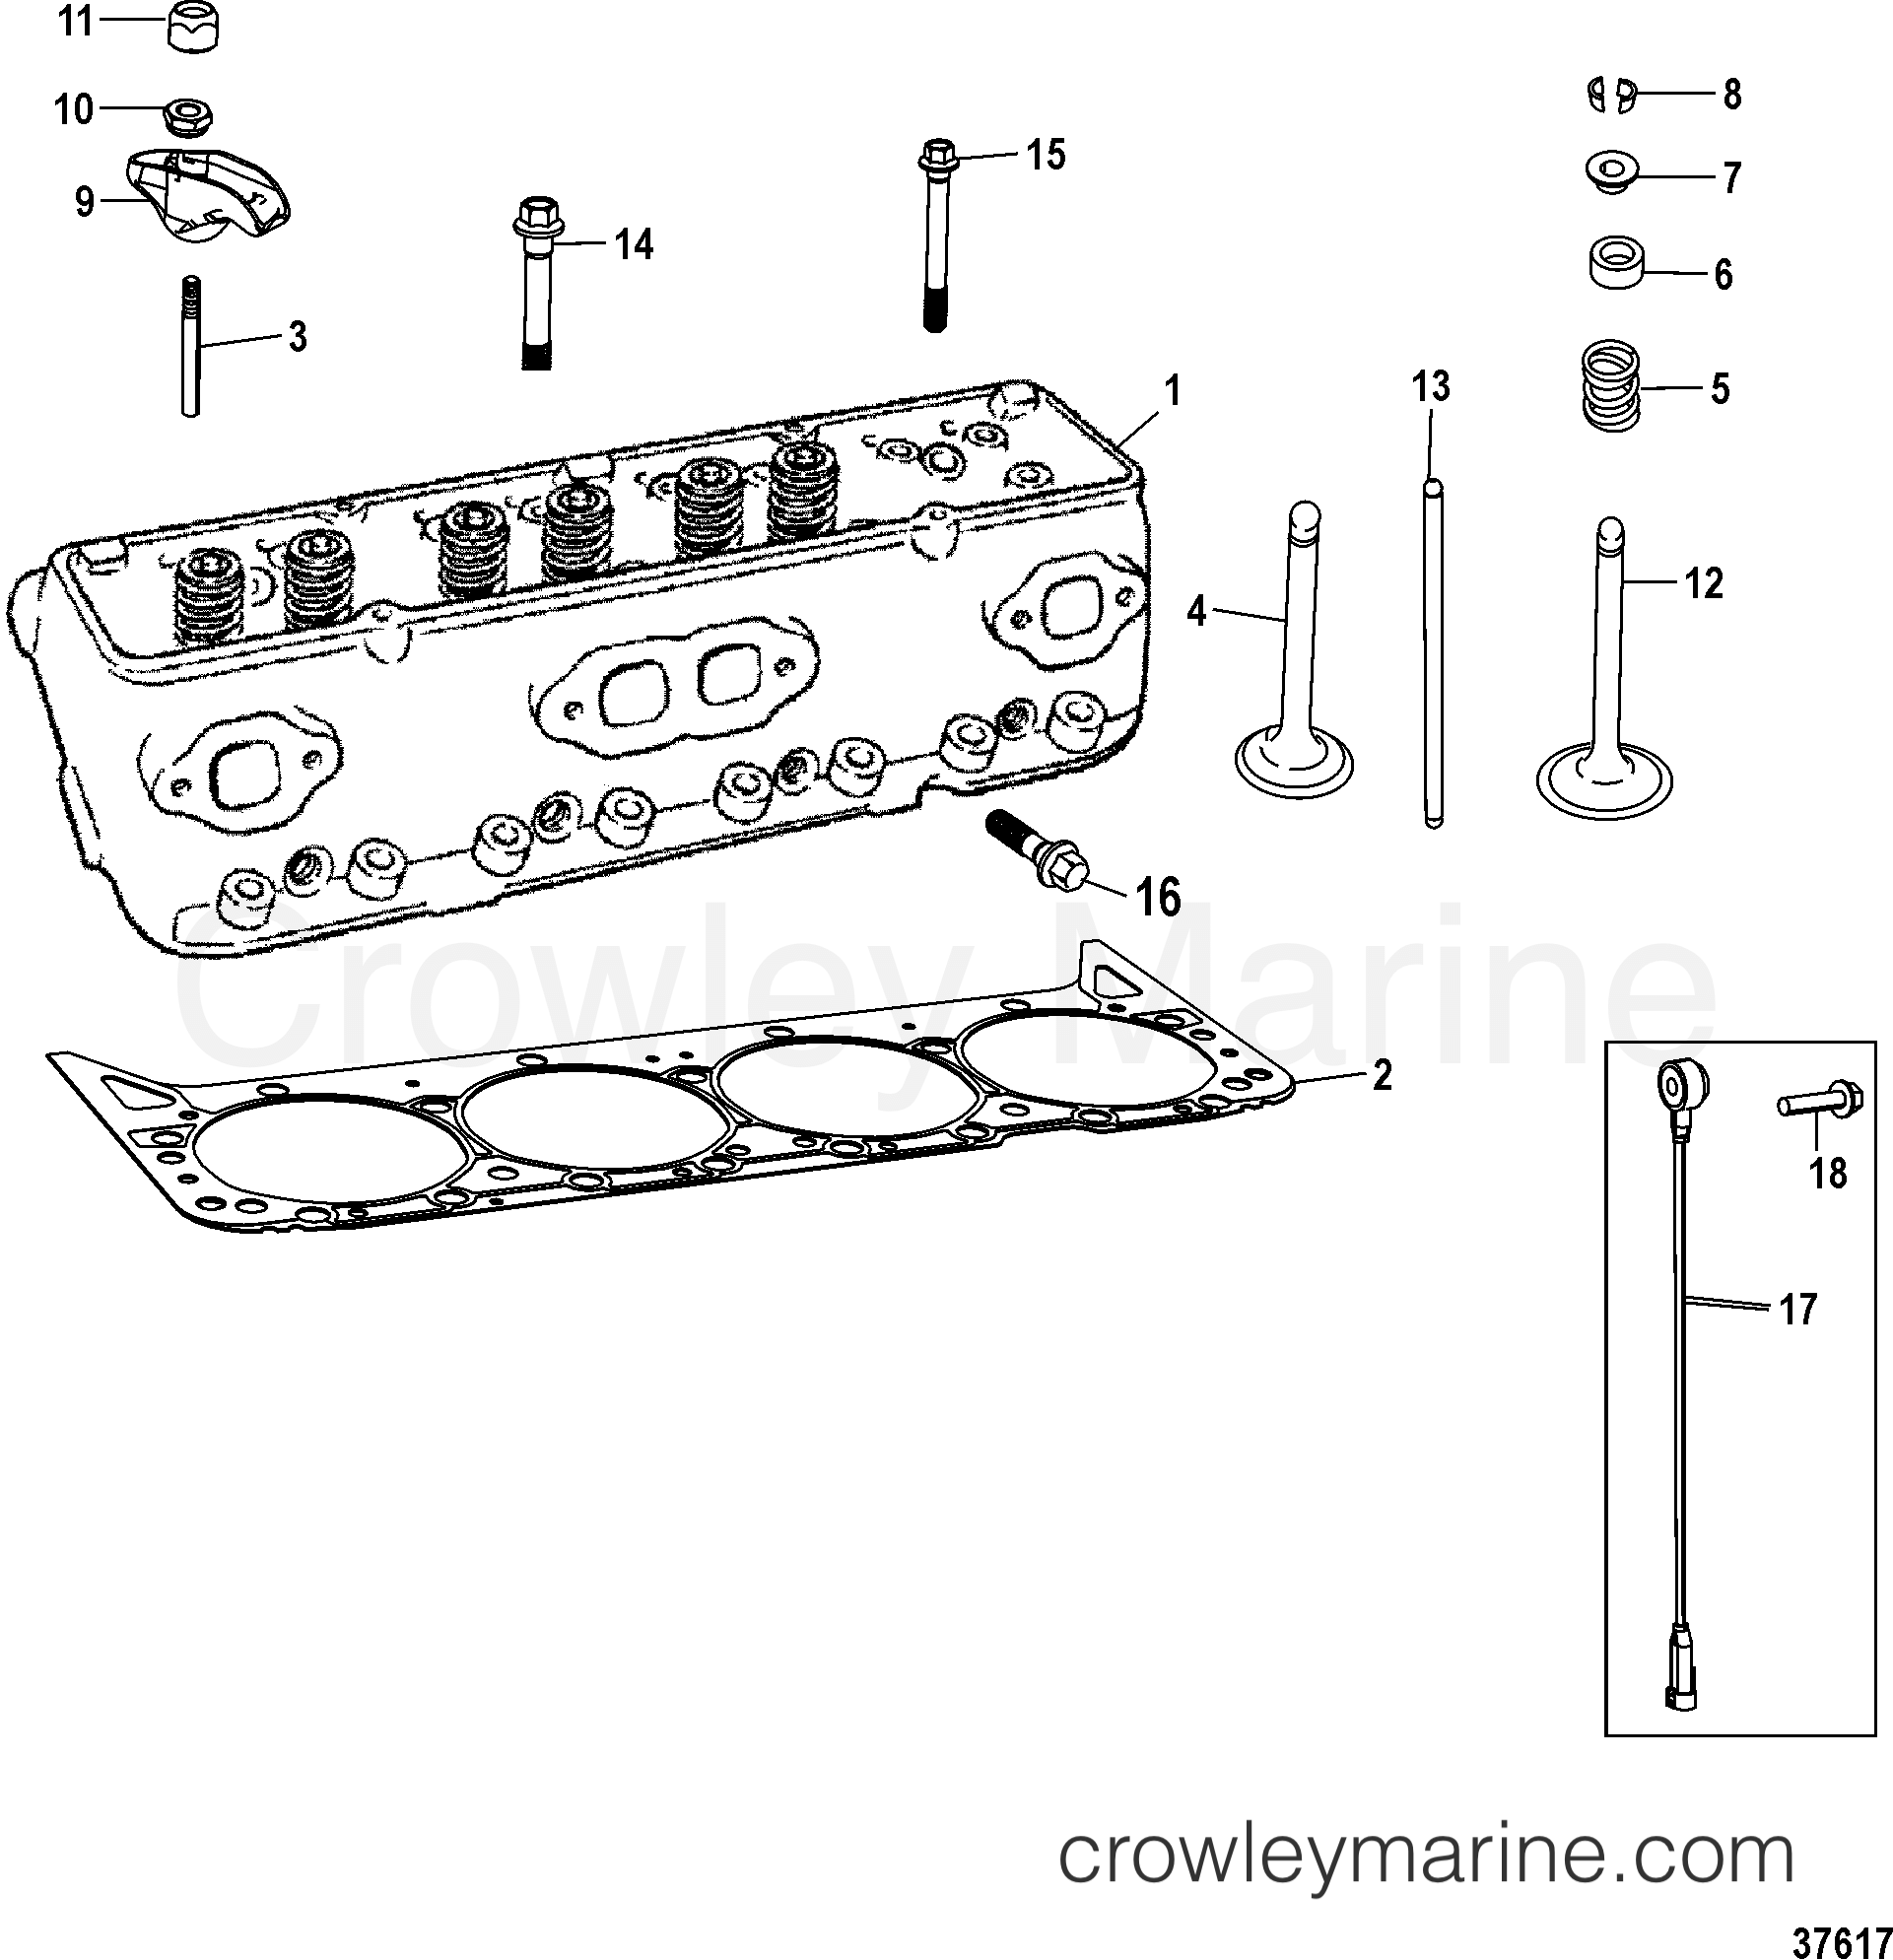 CYLINDER HEAD ASSEMBLY - 1998 Mercury Inboard Engine 350 MAG [DTS